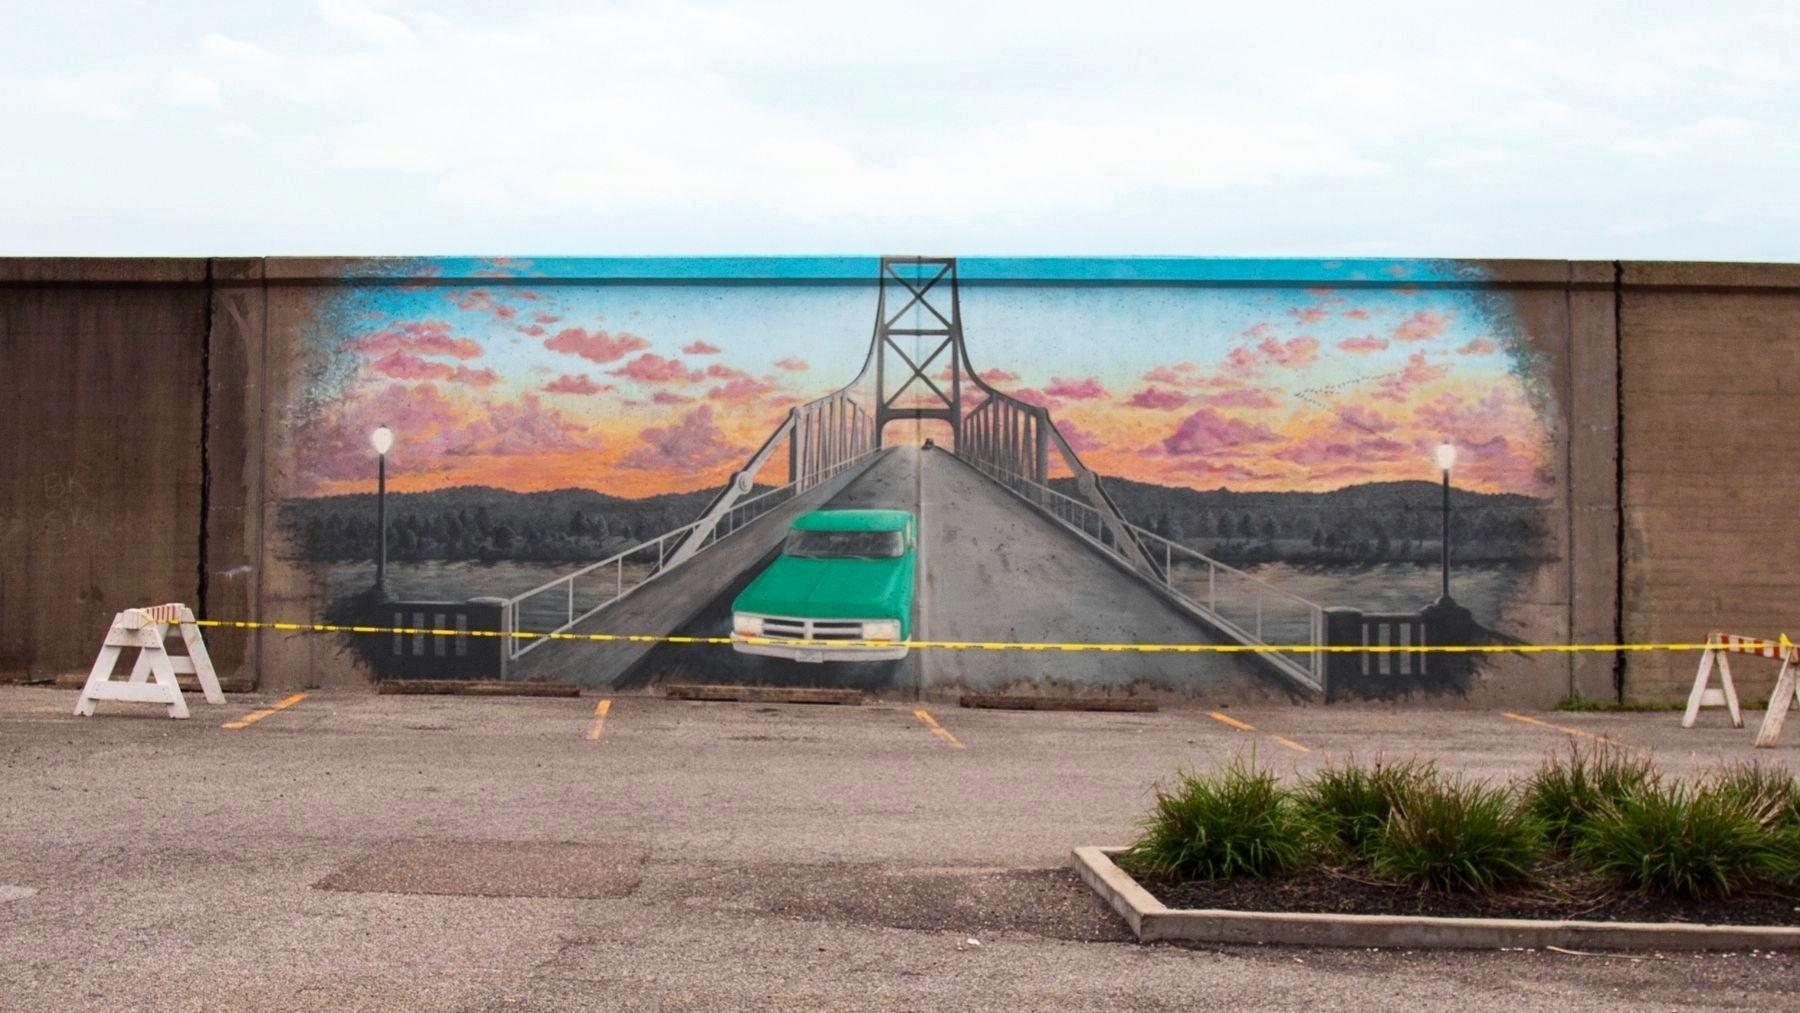 In 2018 a mural depicting the Silver Bridge was painted on the floodwall in front of the memorial. Image obtained from the Historical Marker Database.